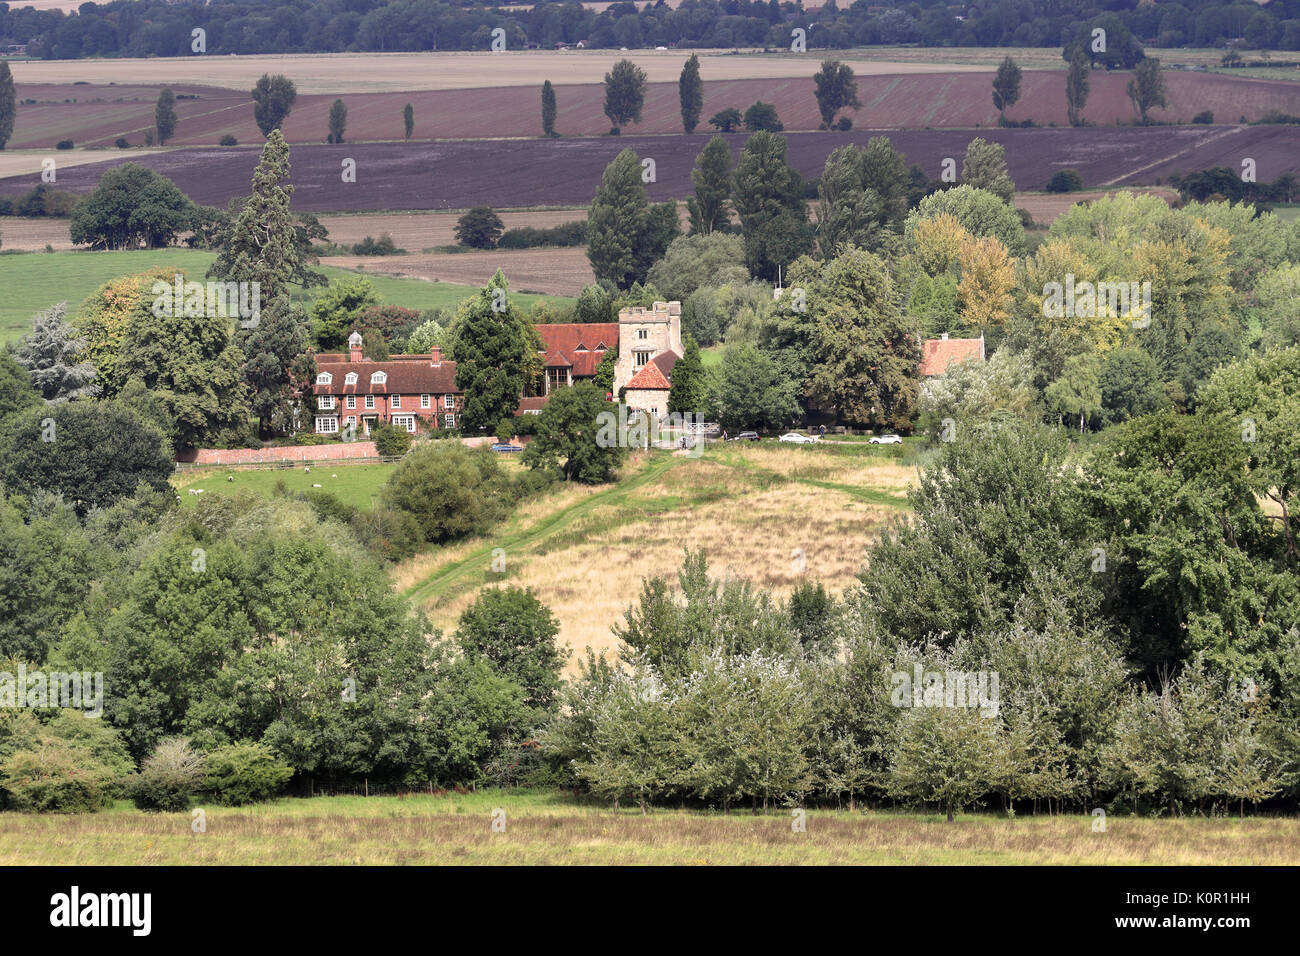 A Landscape in Rural Oxfordshire with fields and meadows and Hamlet of Little Wittenham - Stock Image